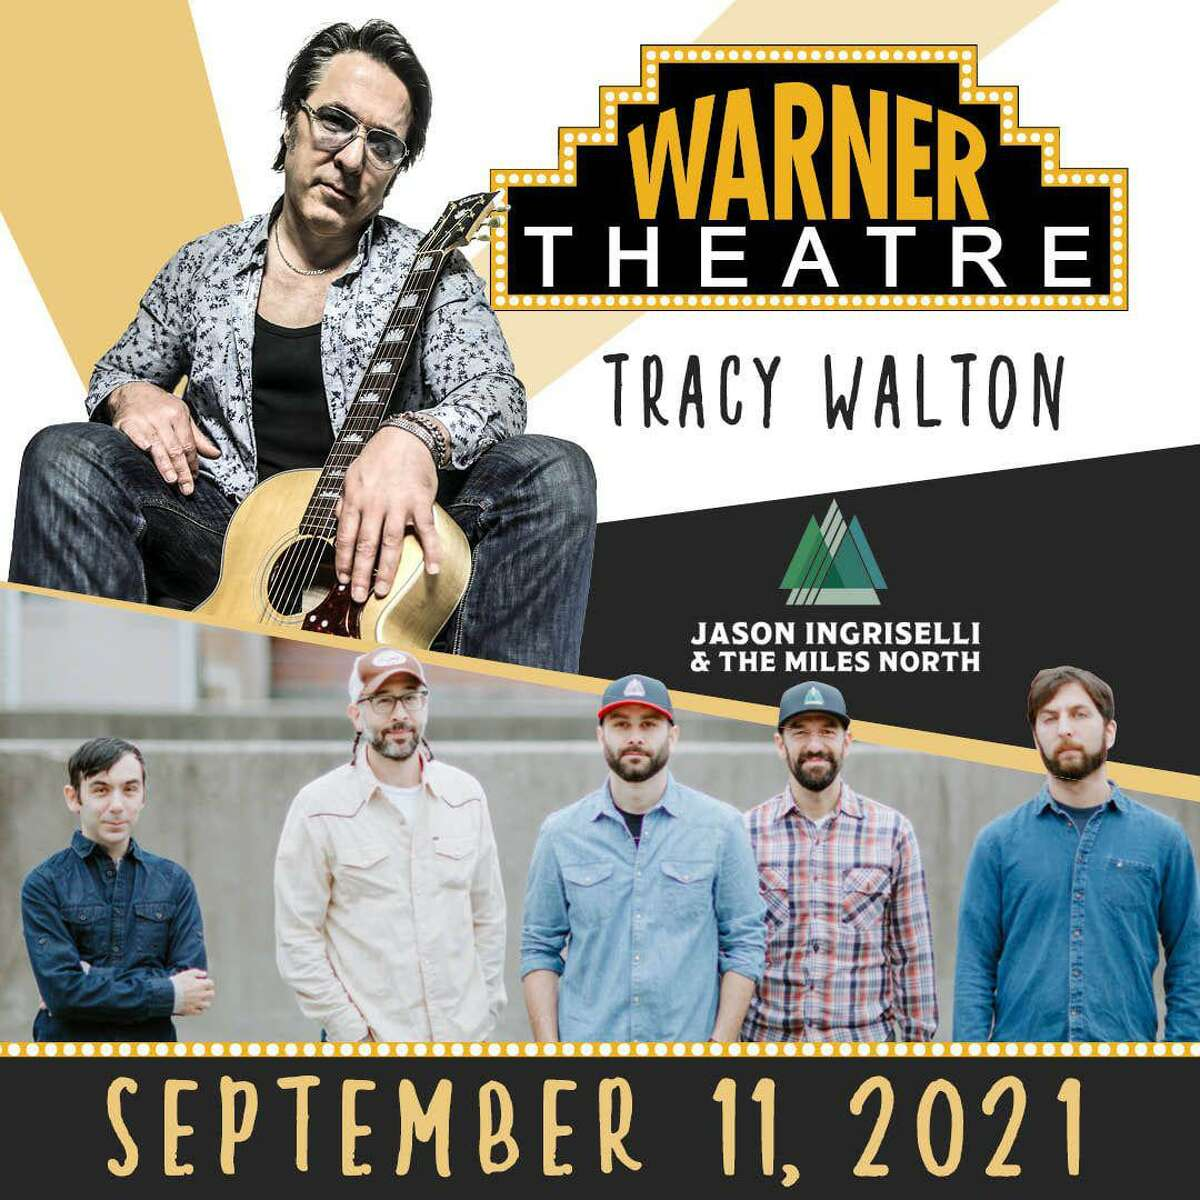 Tracy Walton and Jason Ingriselli & The Miles North Band are performing in a live show at the Warner Theatre, Torrington, Sept. 11, 2021.